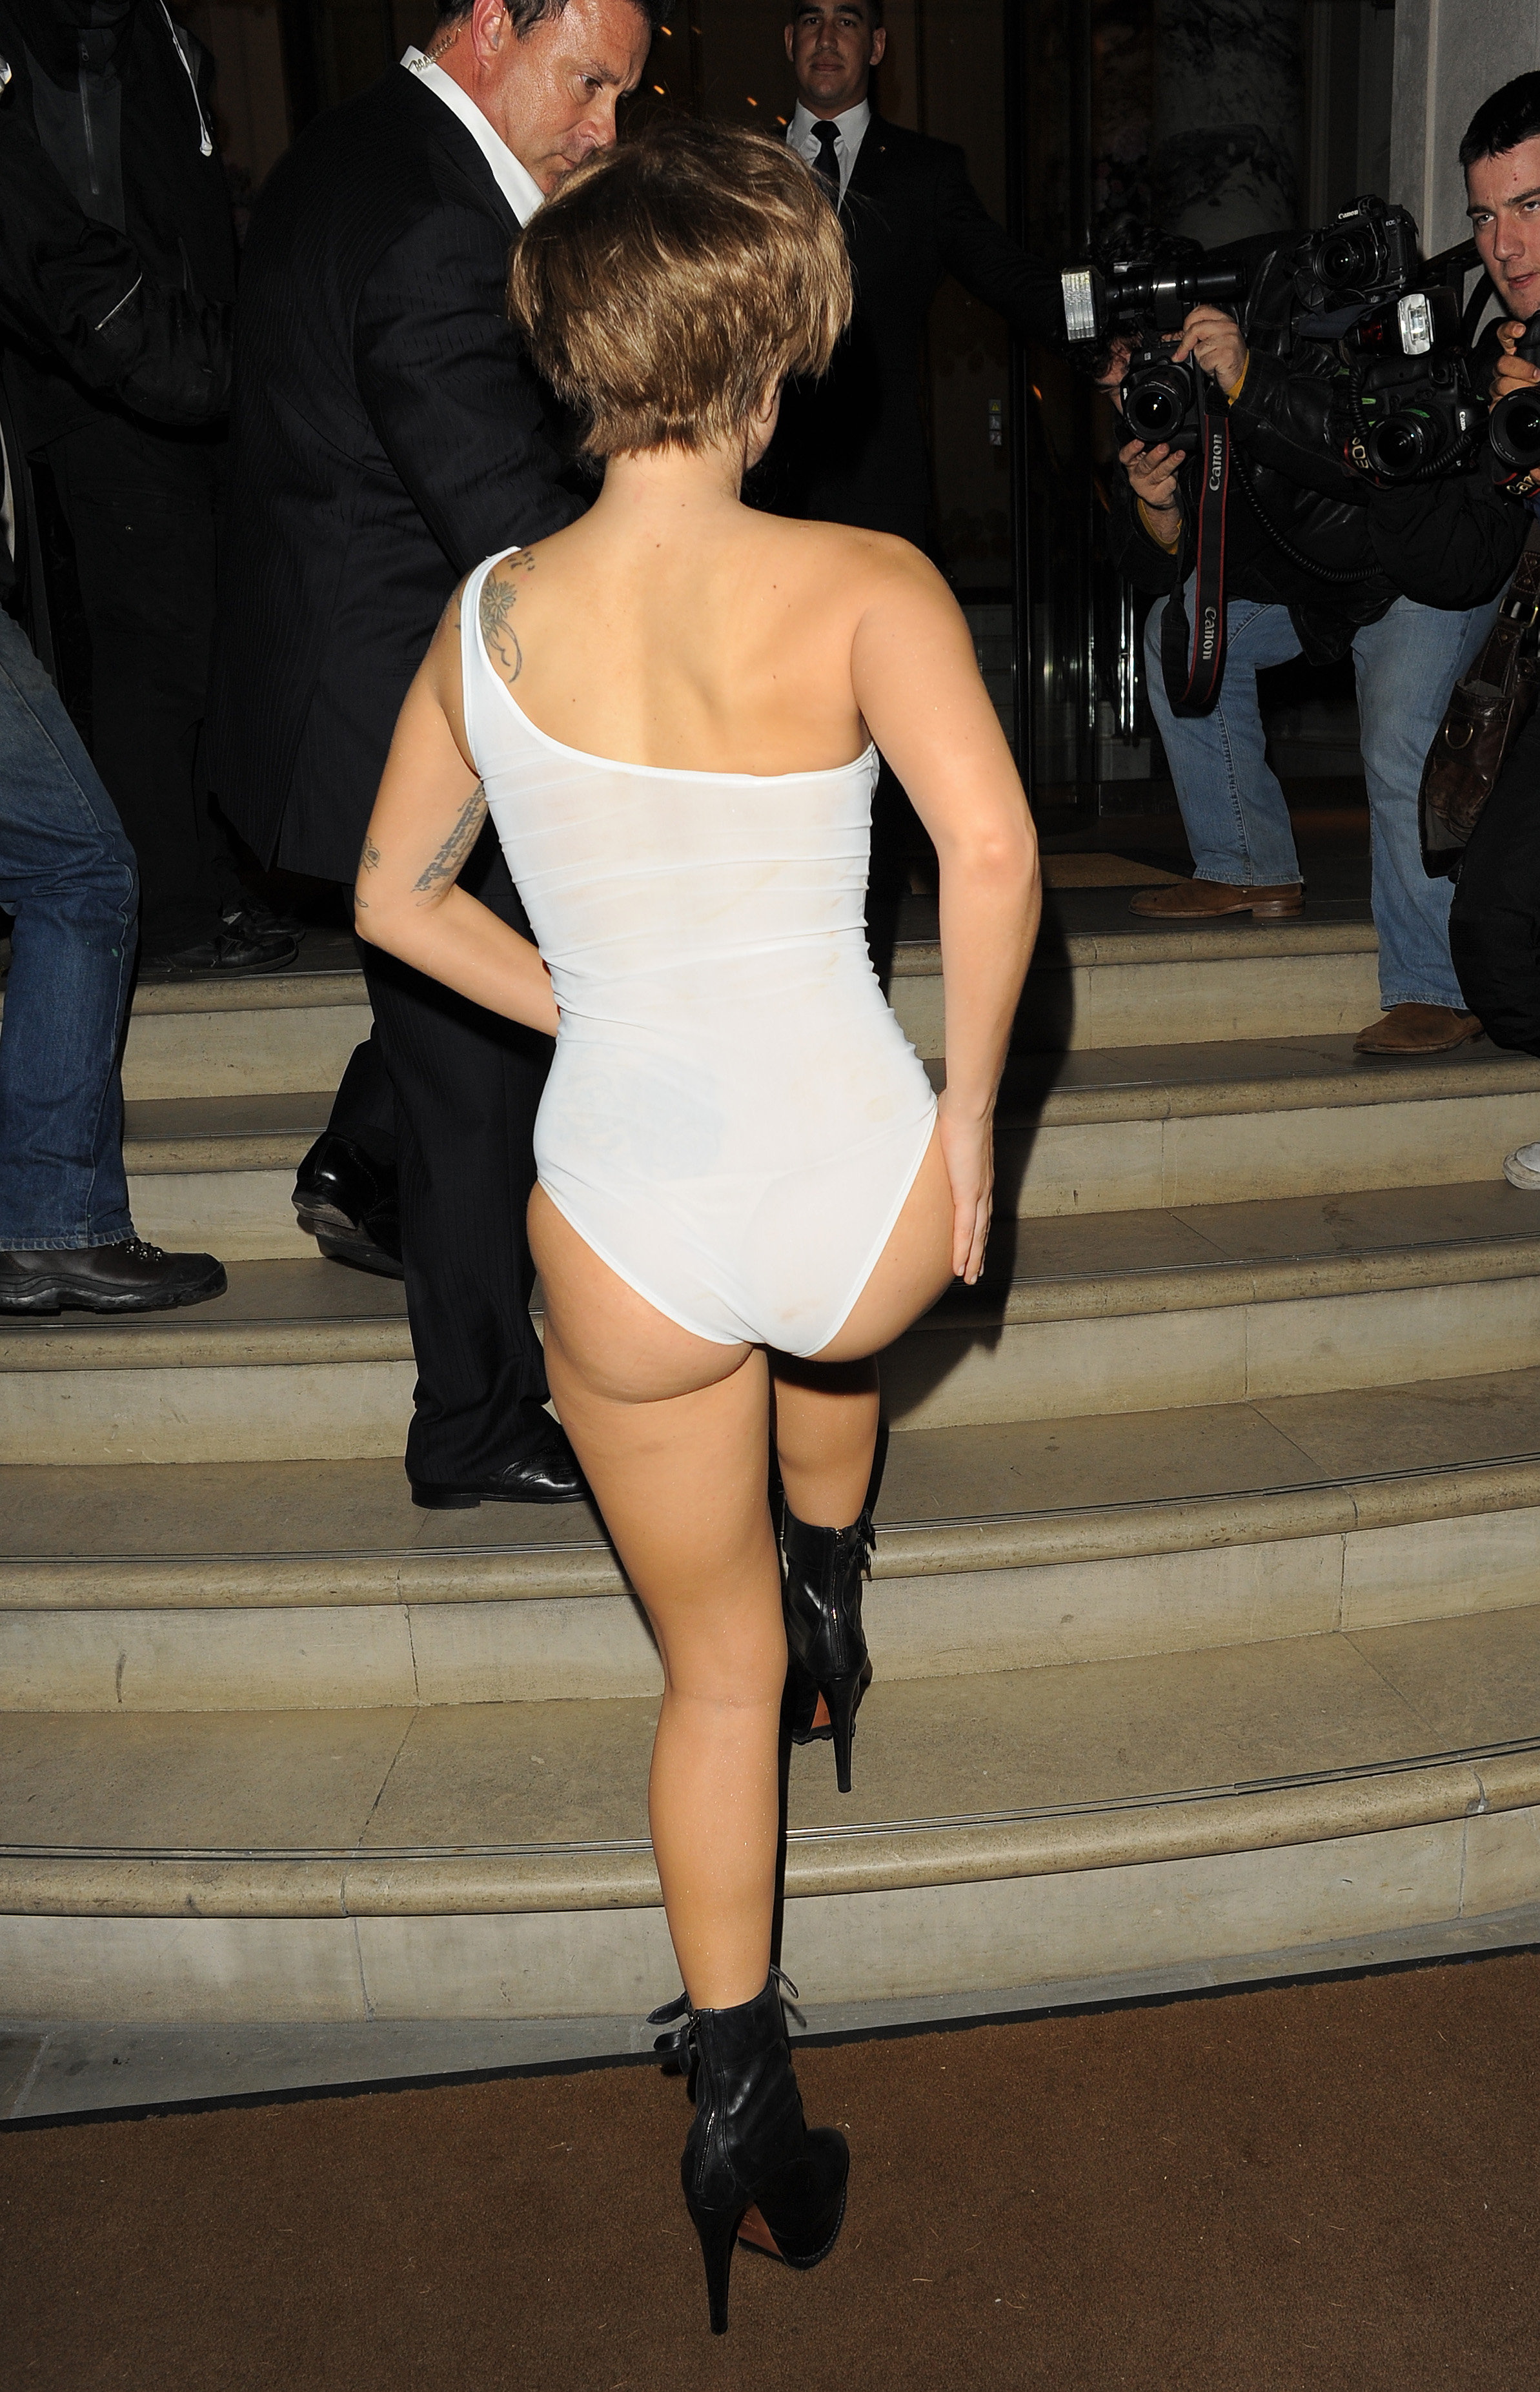 18 Best upskirts images in 2019 | Windy day, Celebrities ...